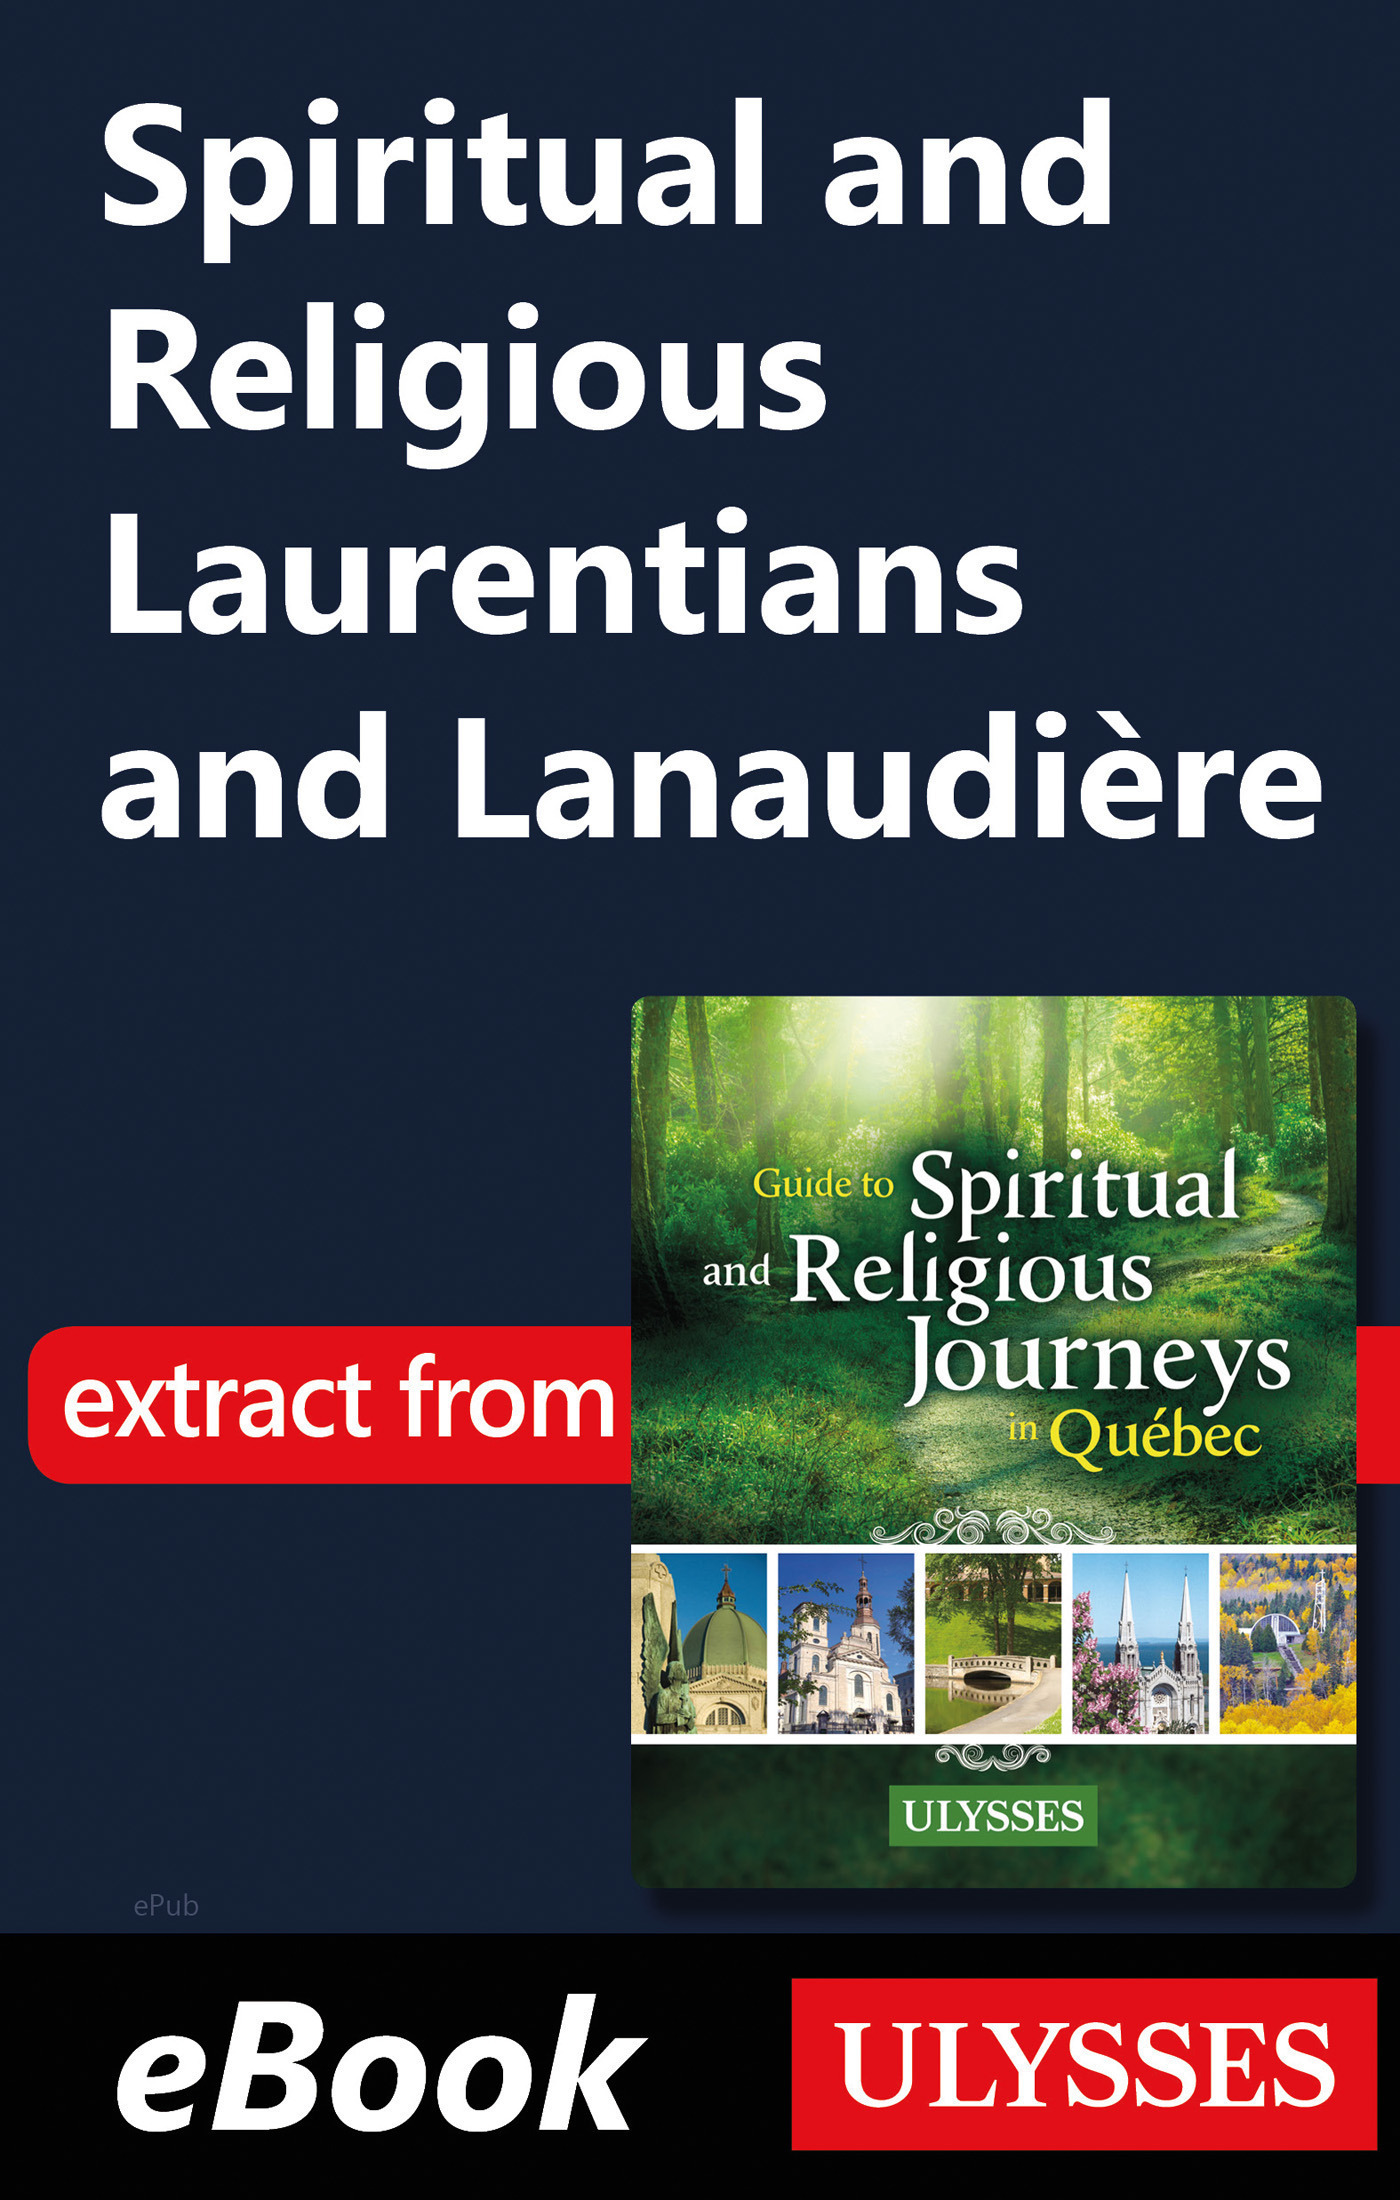 Spiritual and Religious Laurentians and Lanaudière